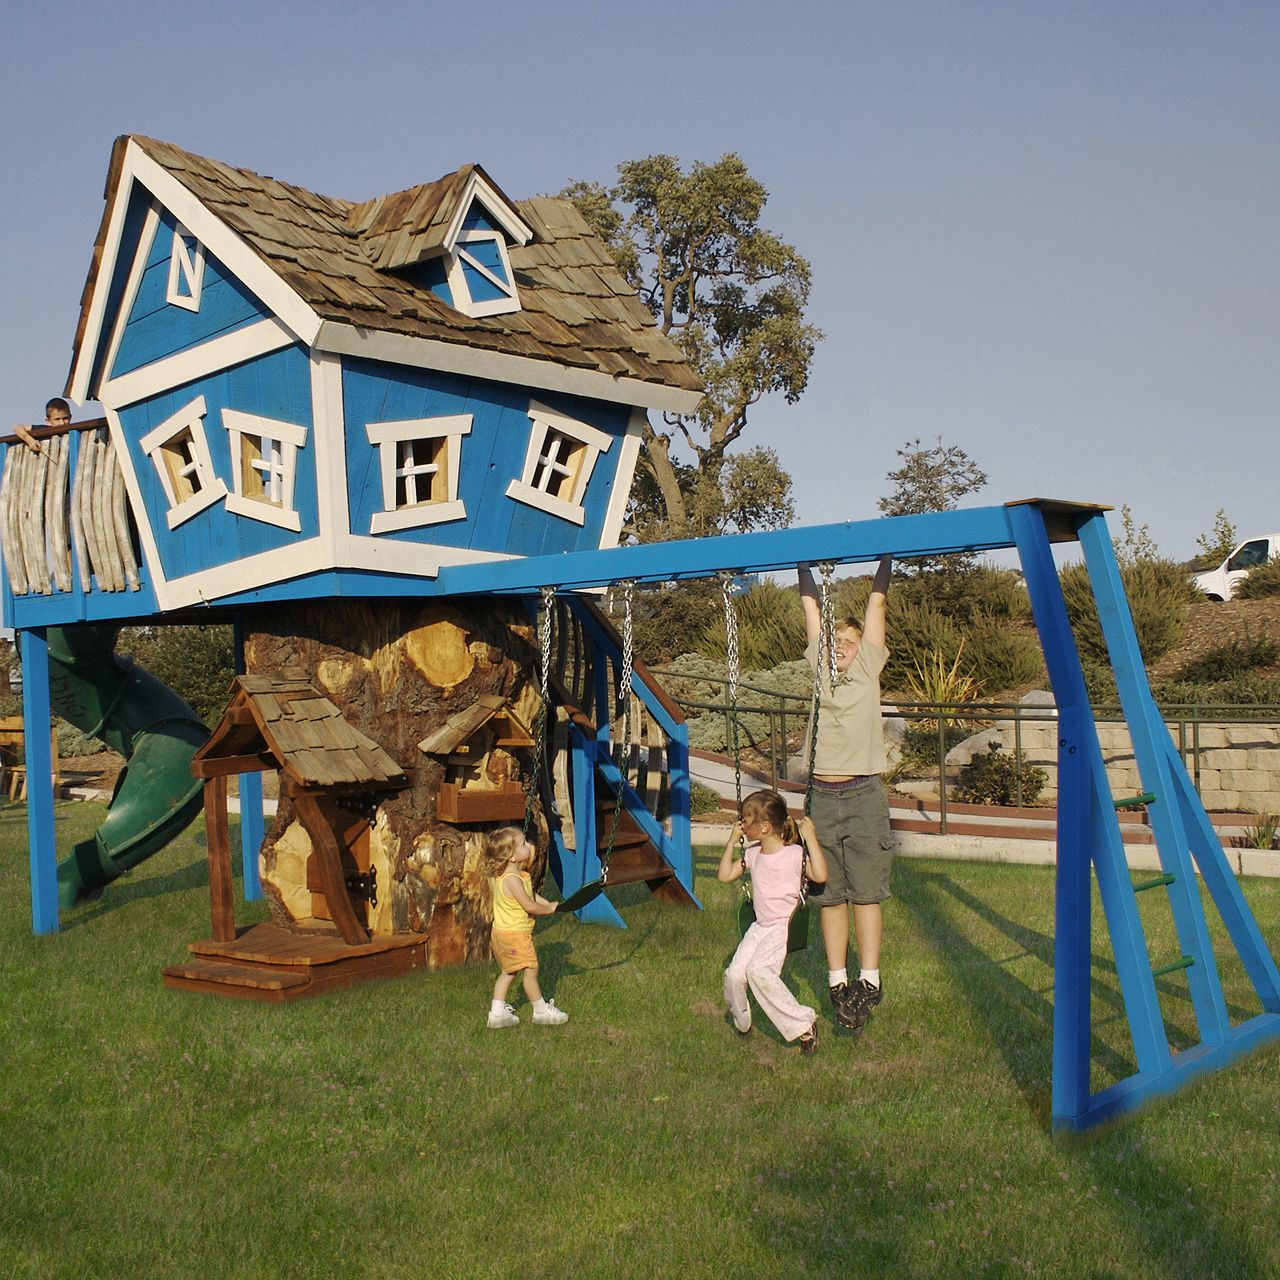 Alice in wonderland looking playhouse kid 39 s activity for Build a swing set playhouse